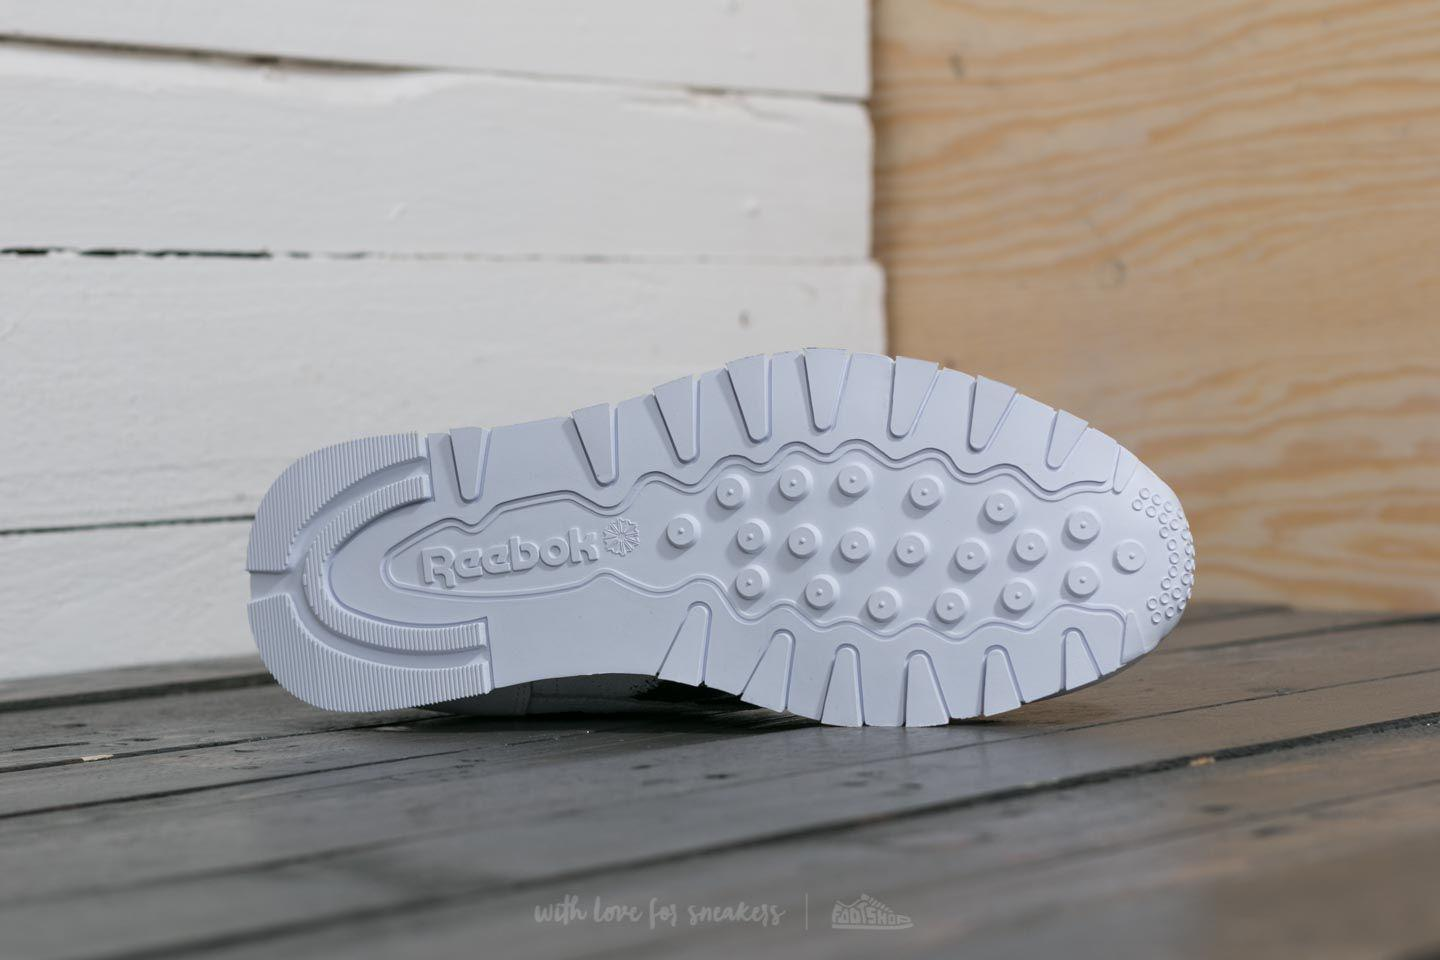 cf6f60a9ab1d Lyst - Reebok Reebok X Montana Cans Classic Leather White  Black in ...